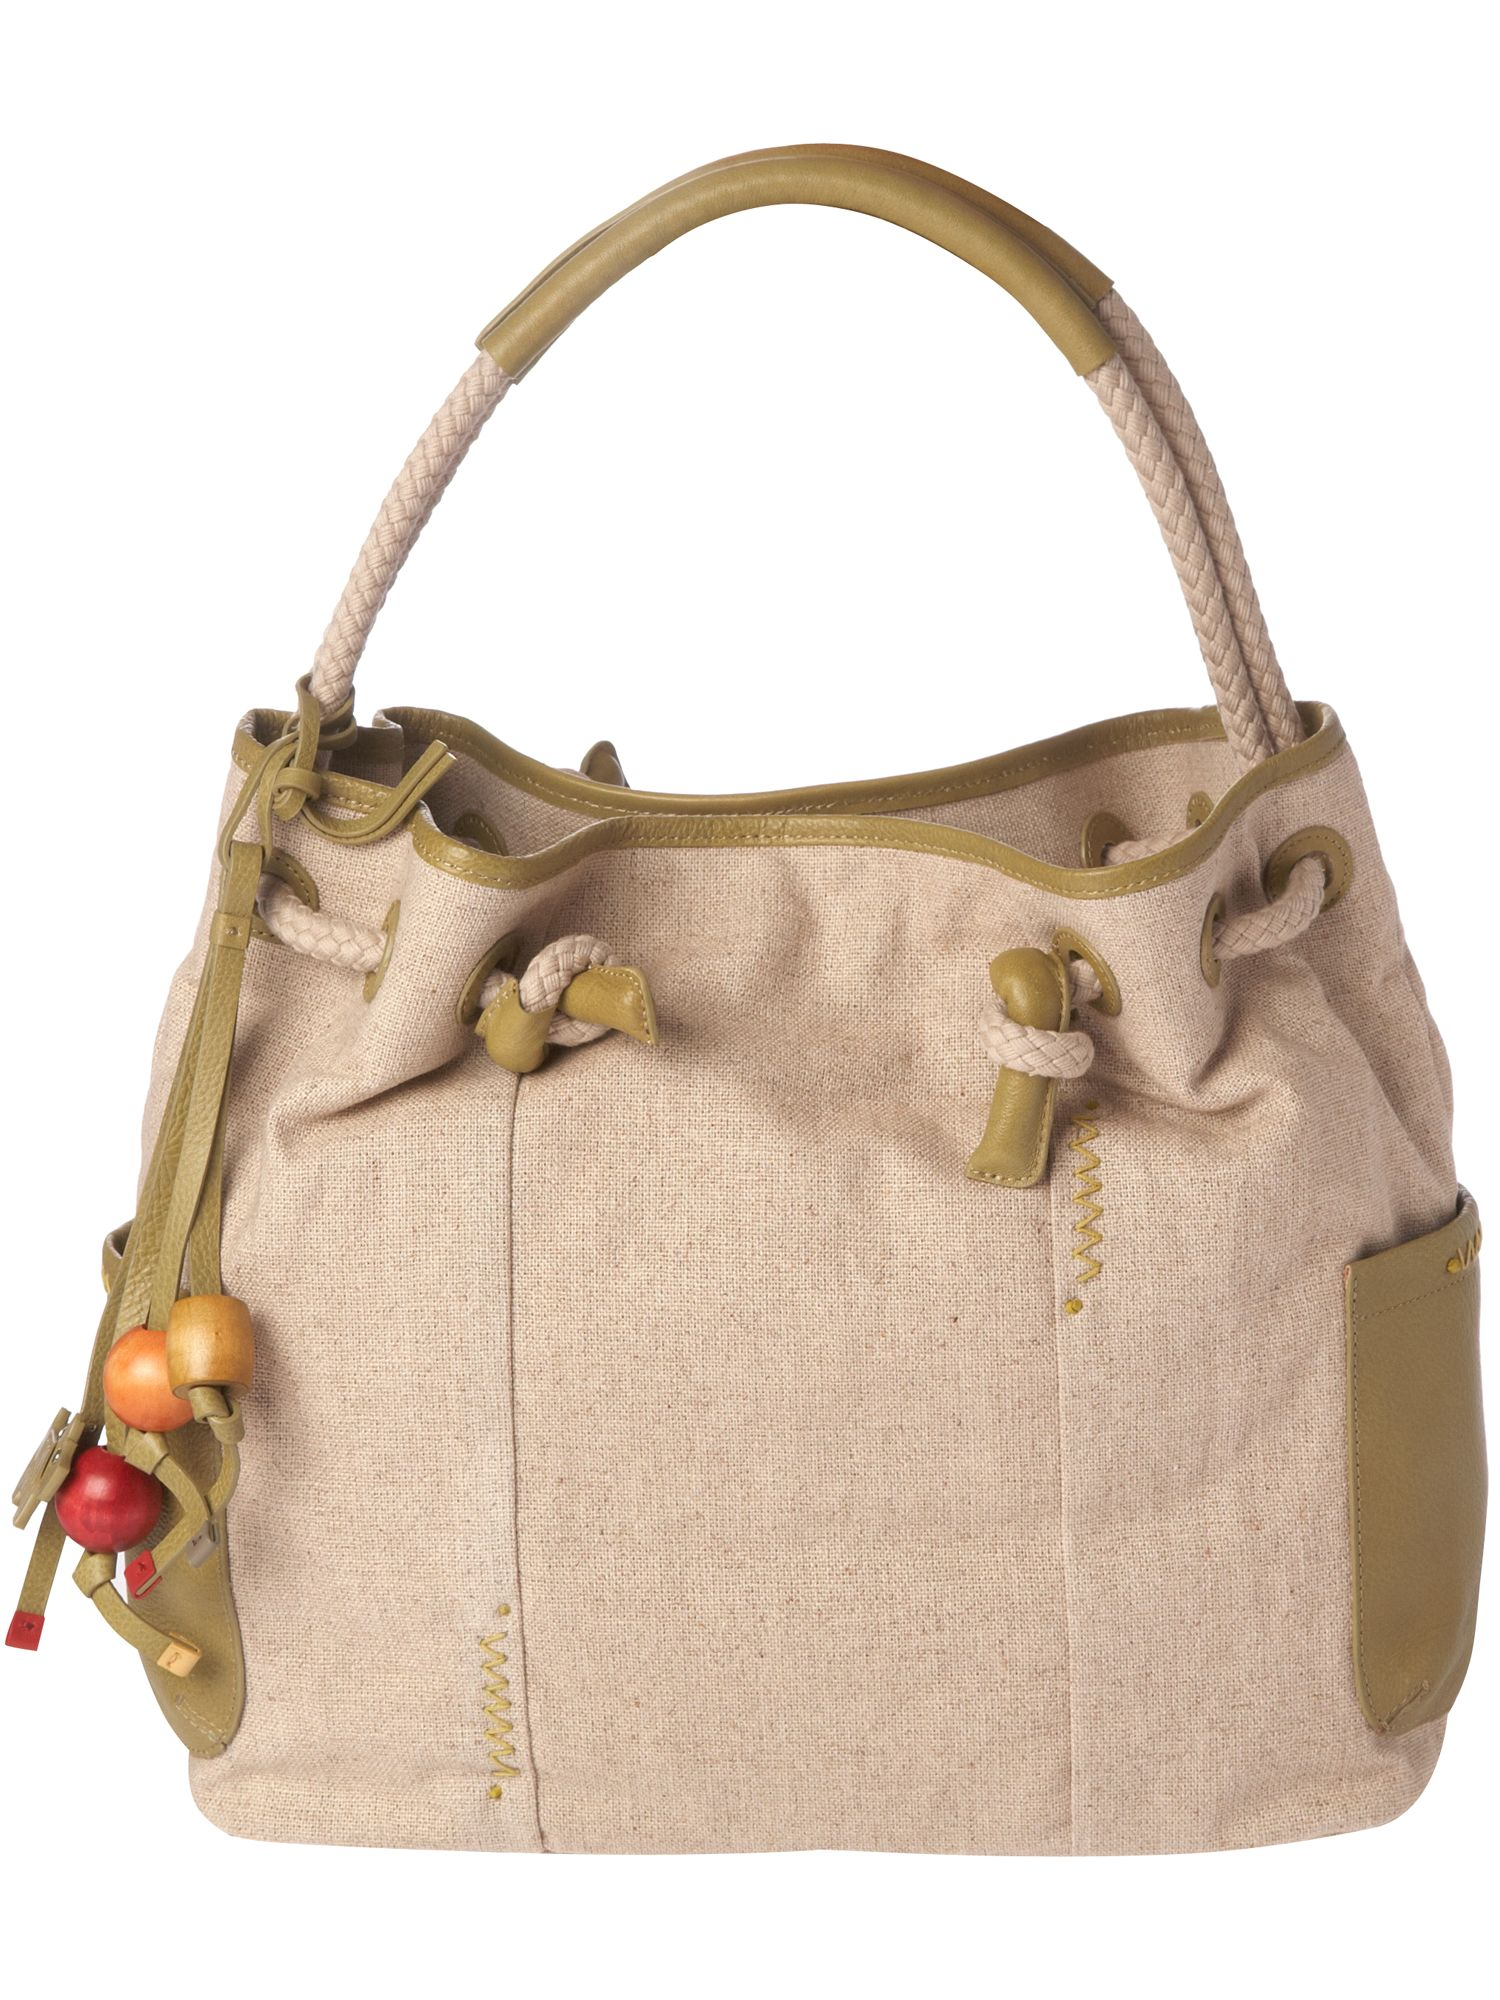 Winslow medium canvas tote bag